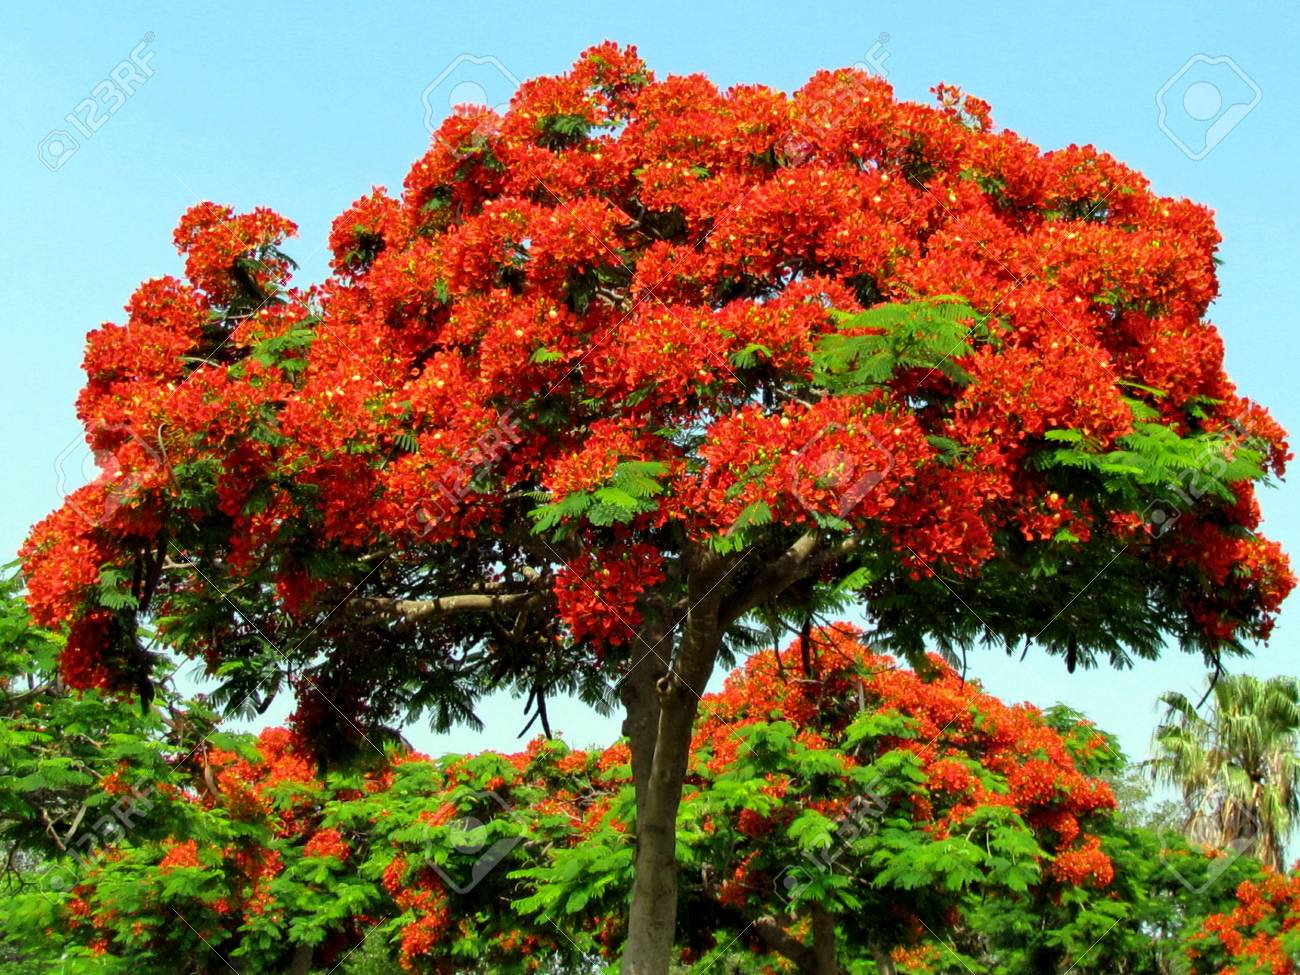 Red Acacia Tree In Edith Wolfson Park In Ramat Gan Israel June